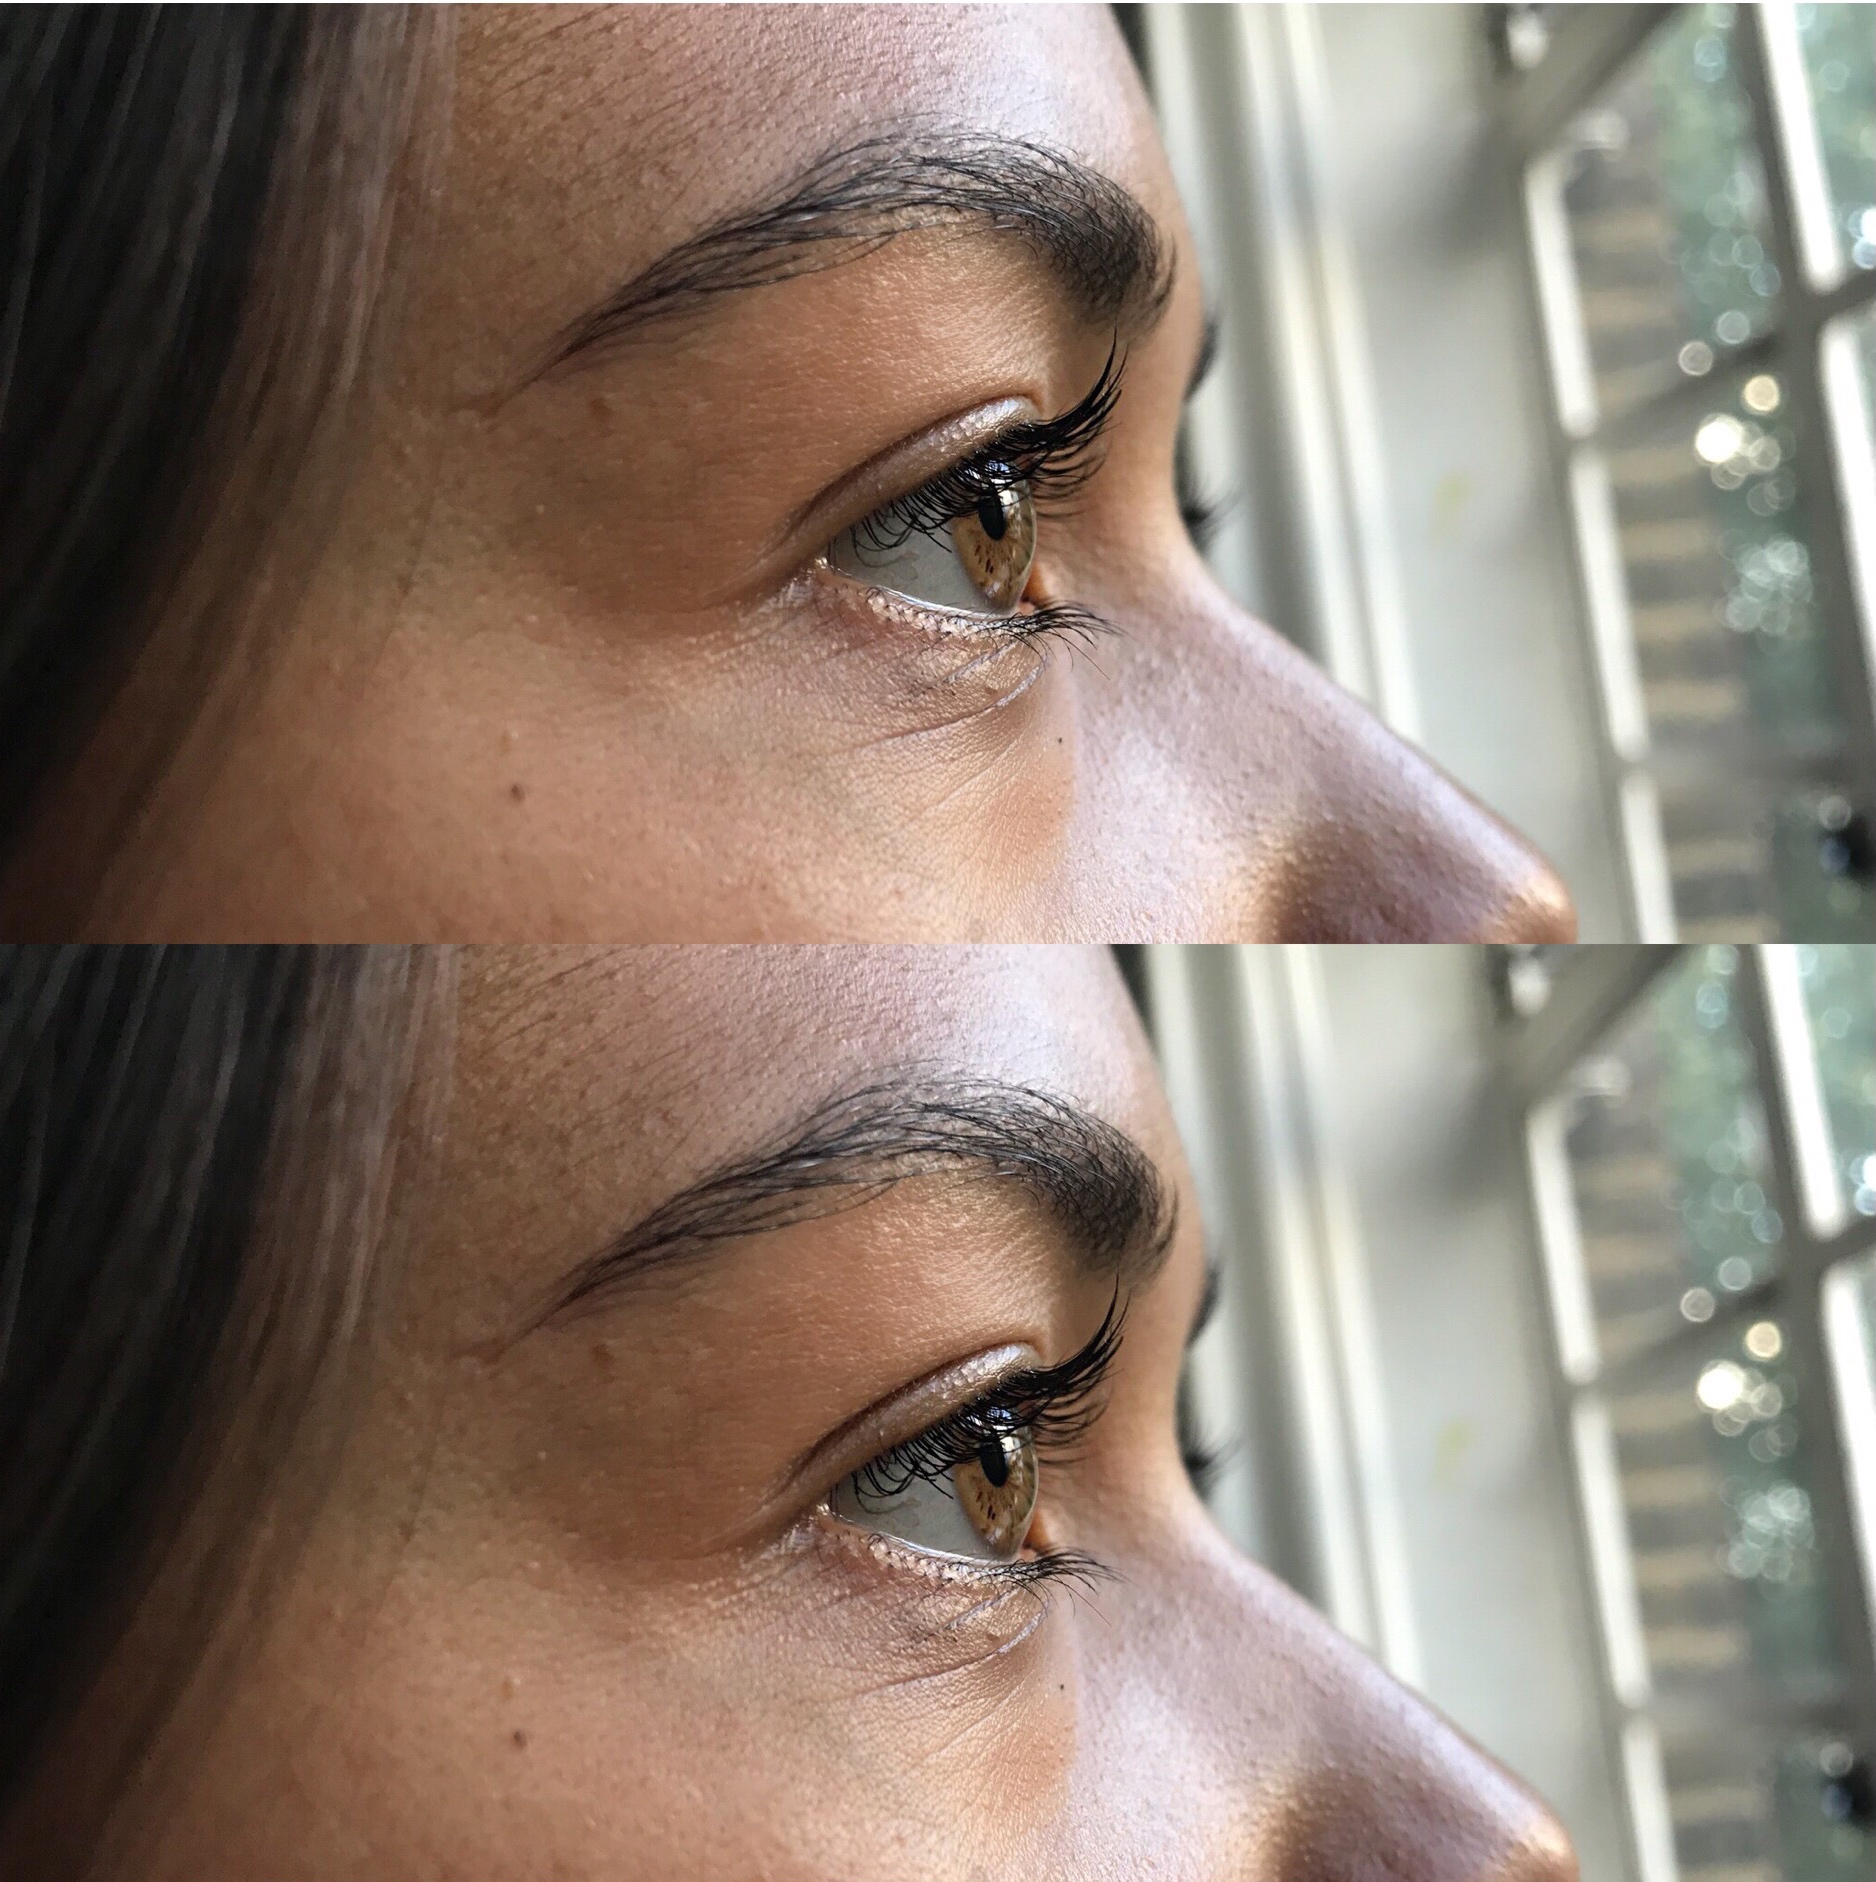 Lash Lift and Tint - - Darker, more defined and natural looking curled lashes.- Lasts 6-8 Weeks.- Minimal after-care.- Suitable for use with mascara.- 1 Hour Treatment.